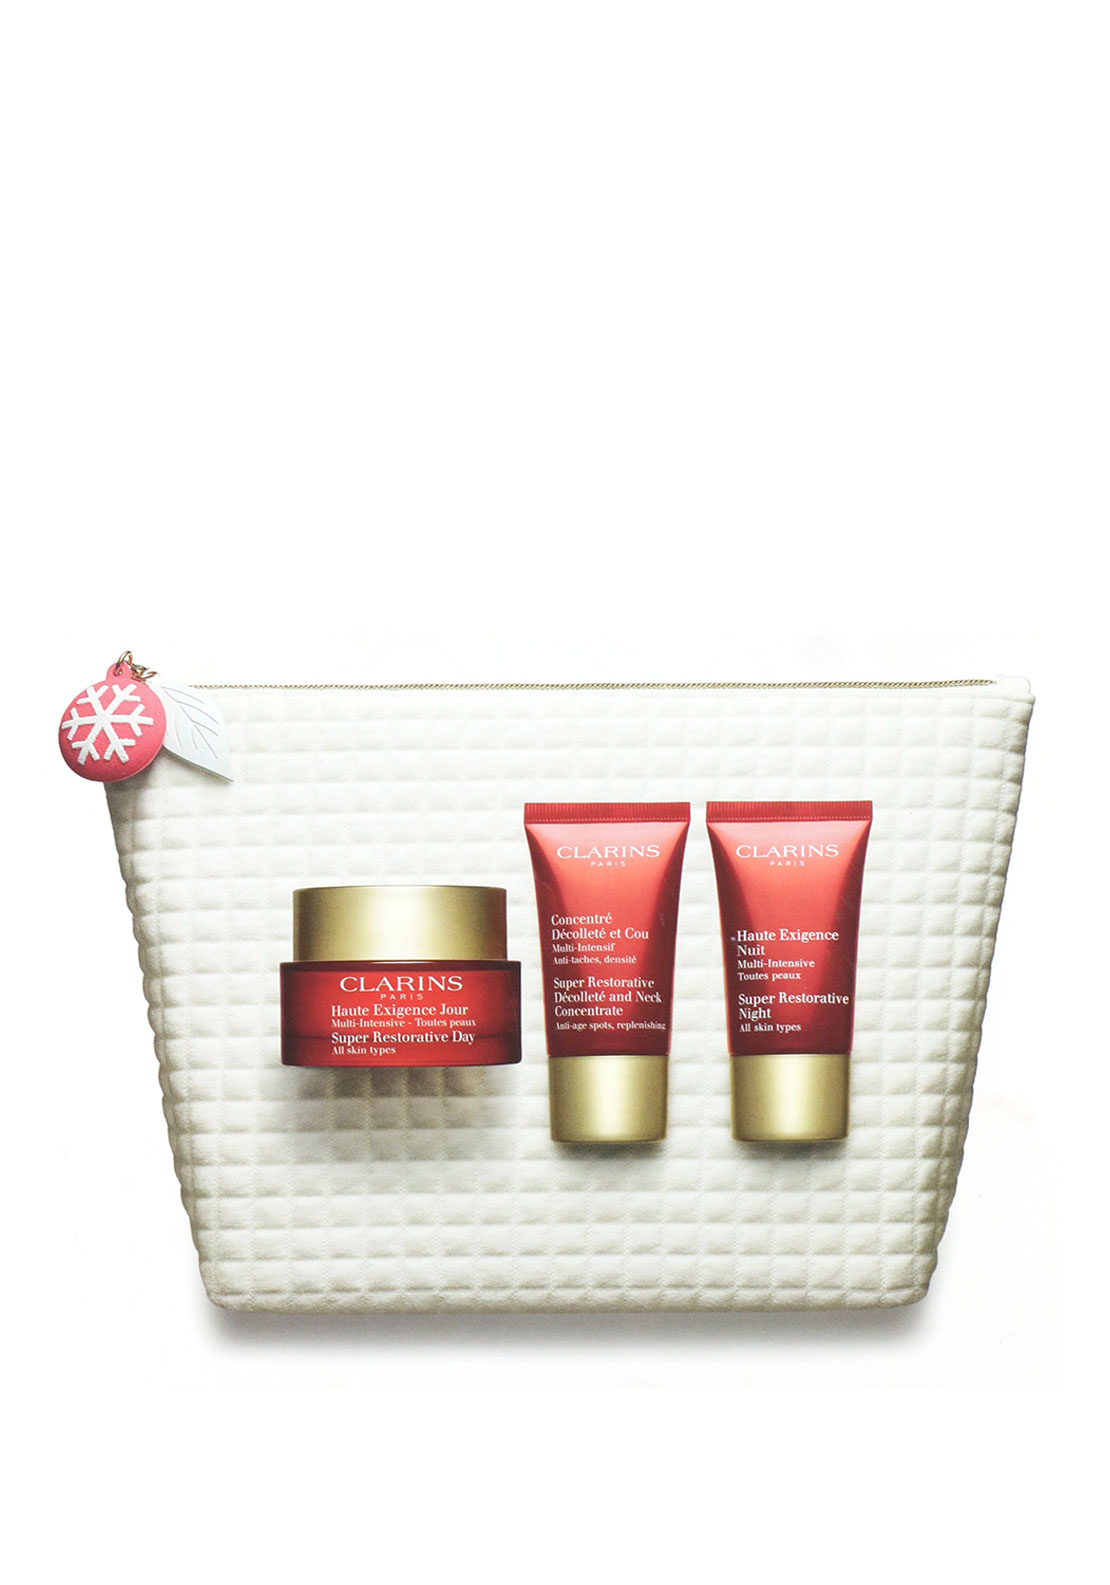 Clarins Christmas Replenishing & Plumping Essentials Gift Set